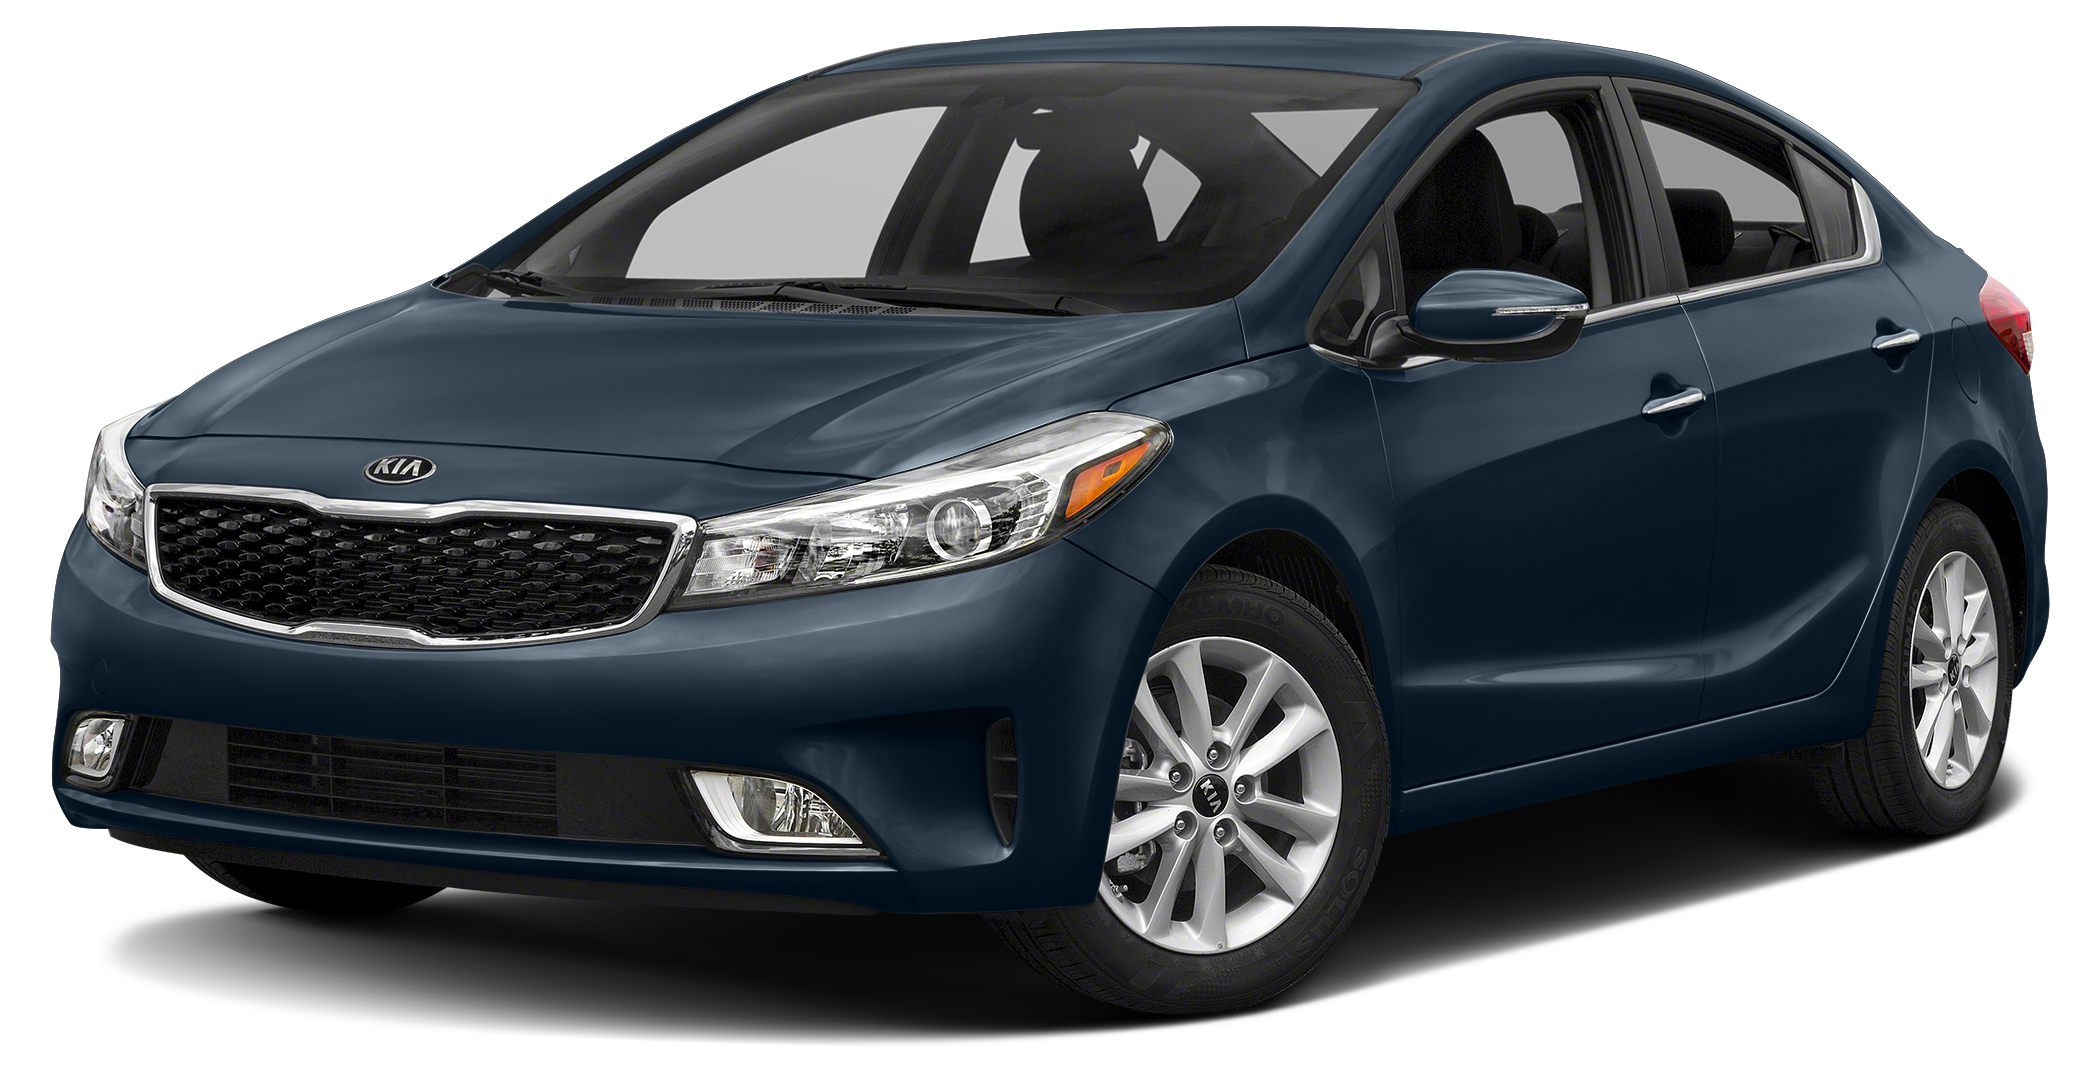 2017 Kia Forte S Miles 16Color Deep Sea Blue Stock SB16507 VIN 3KPFL4A79HE024319